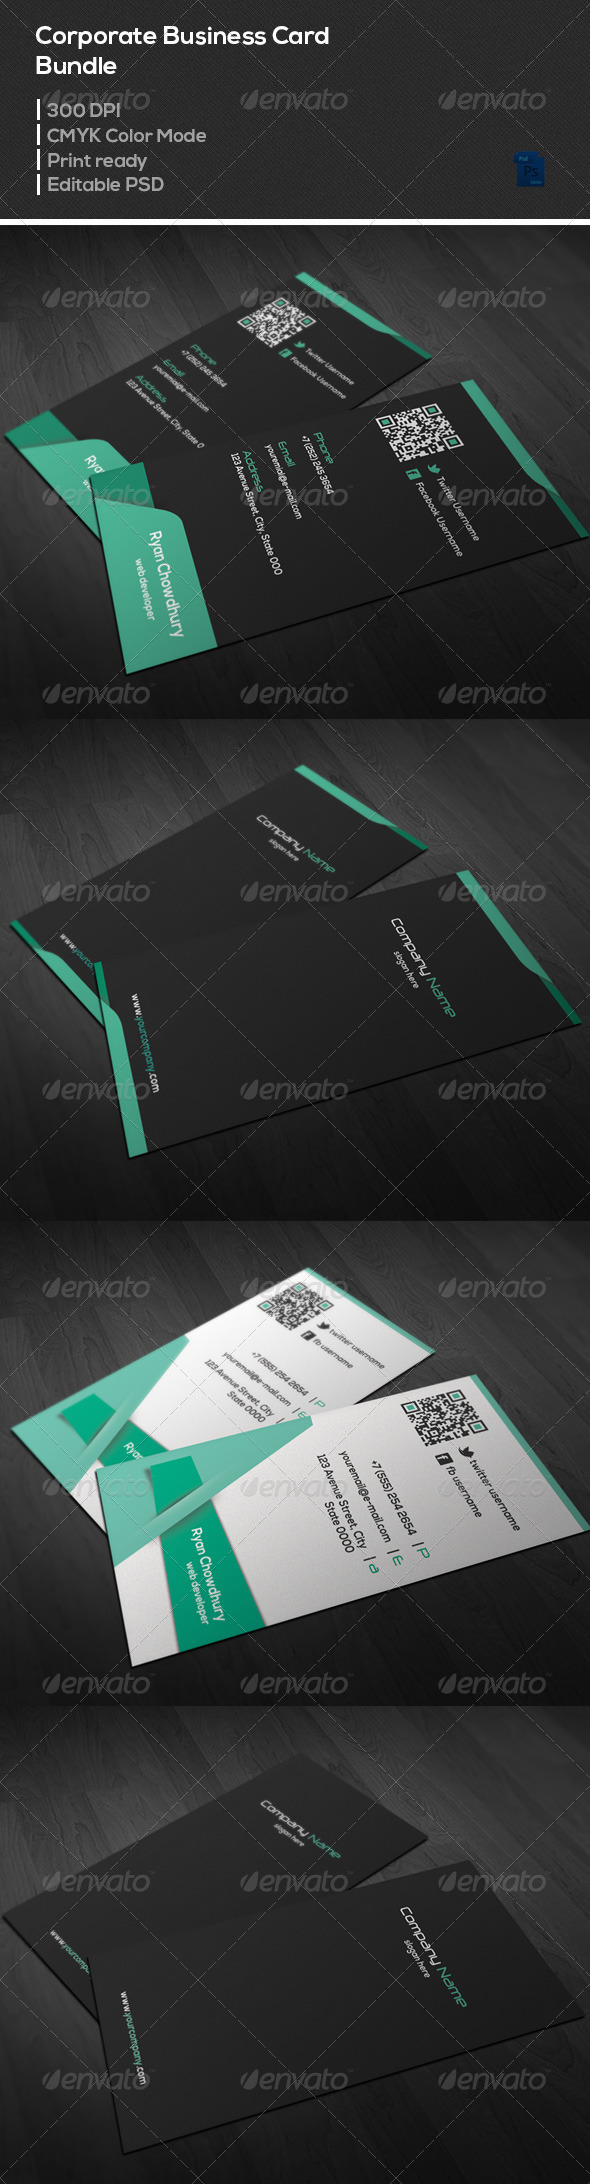 GraphicRiver Corporate Business Card Bundle 7101752